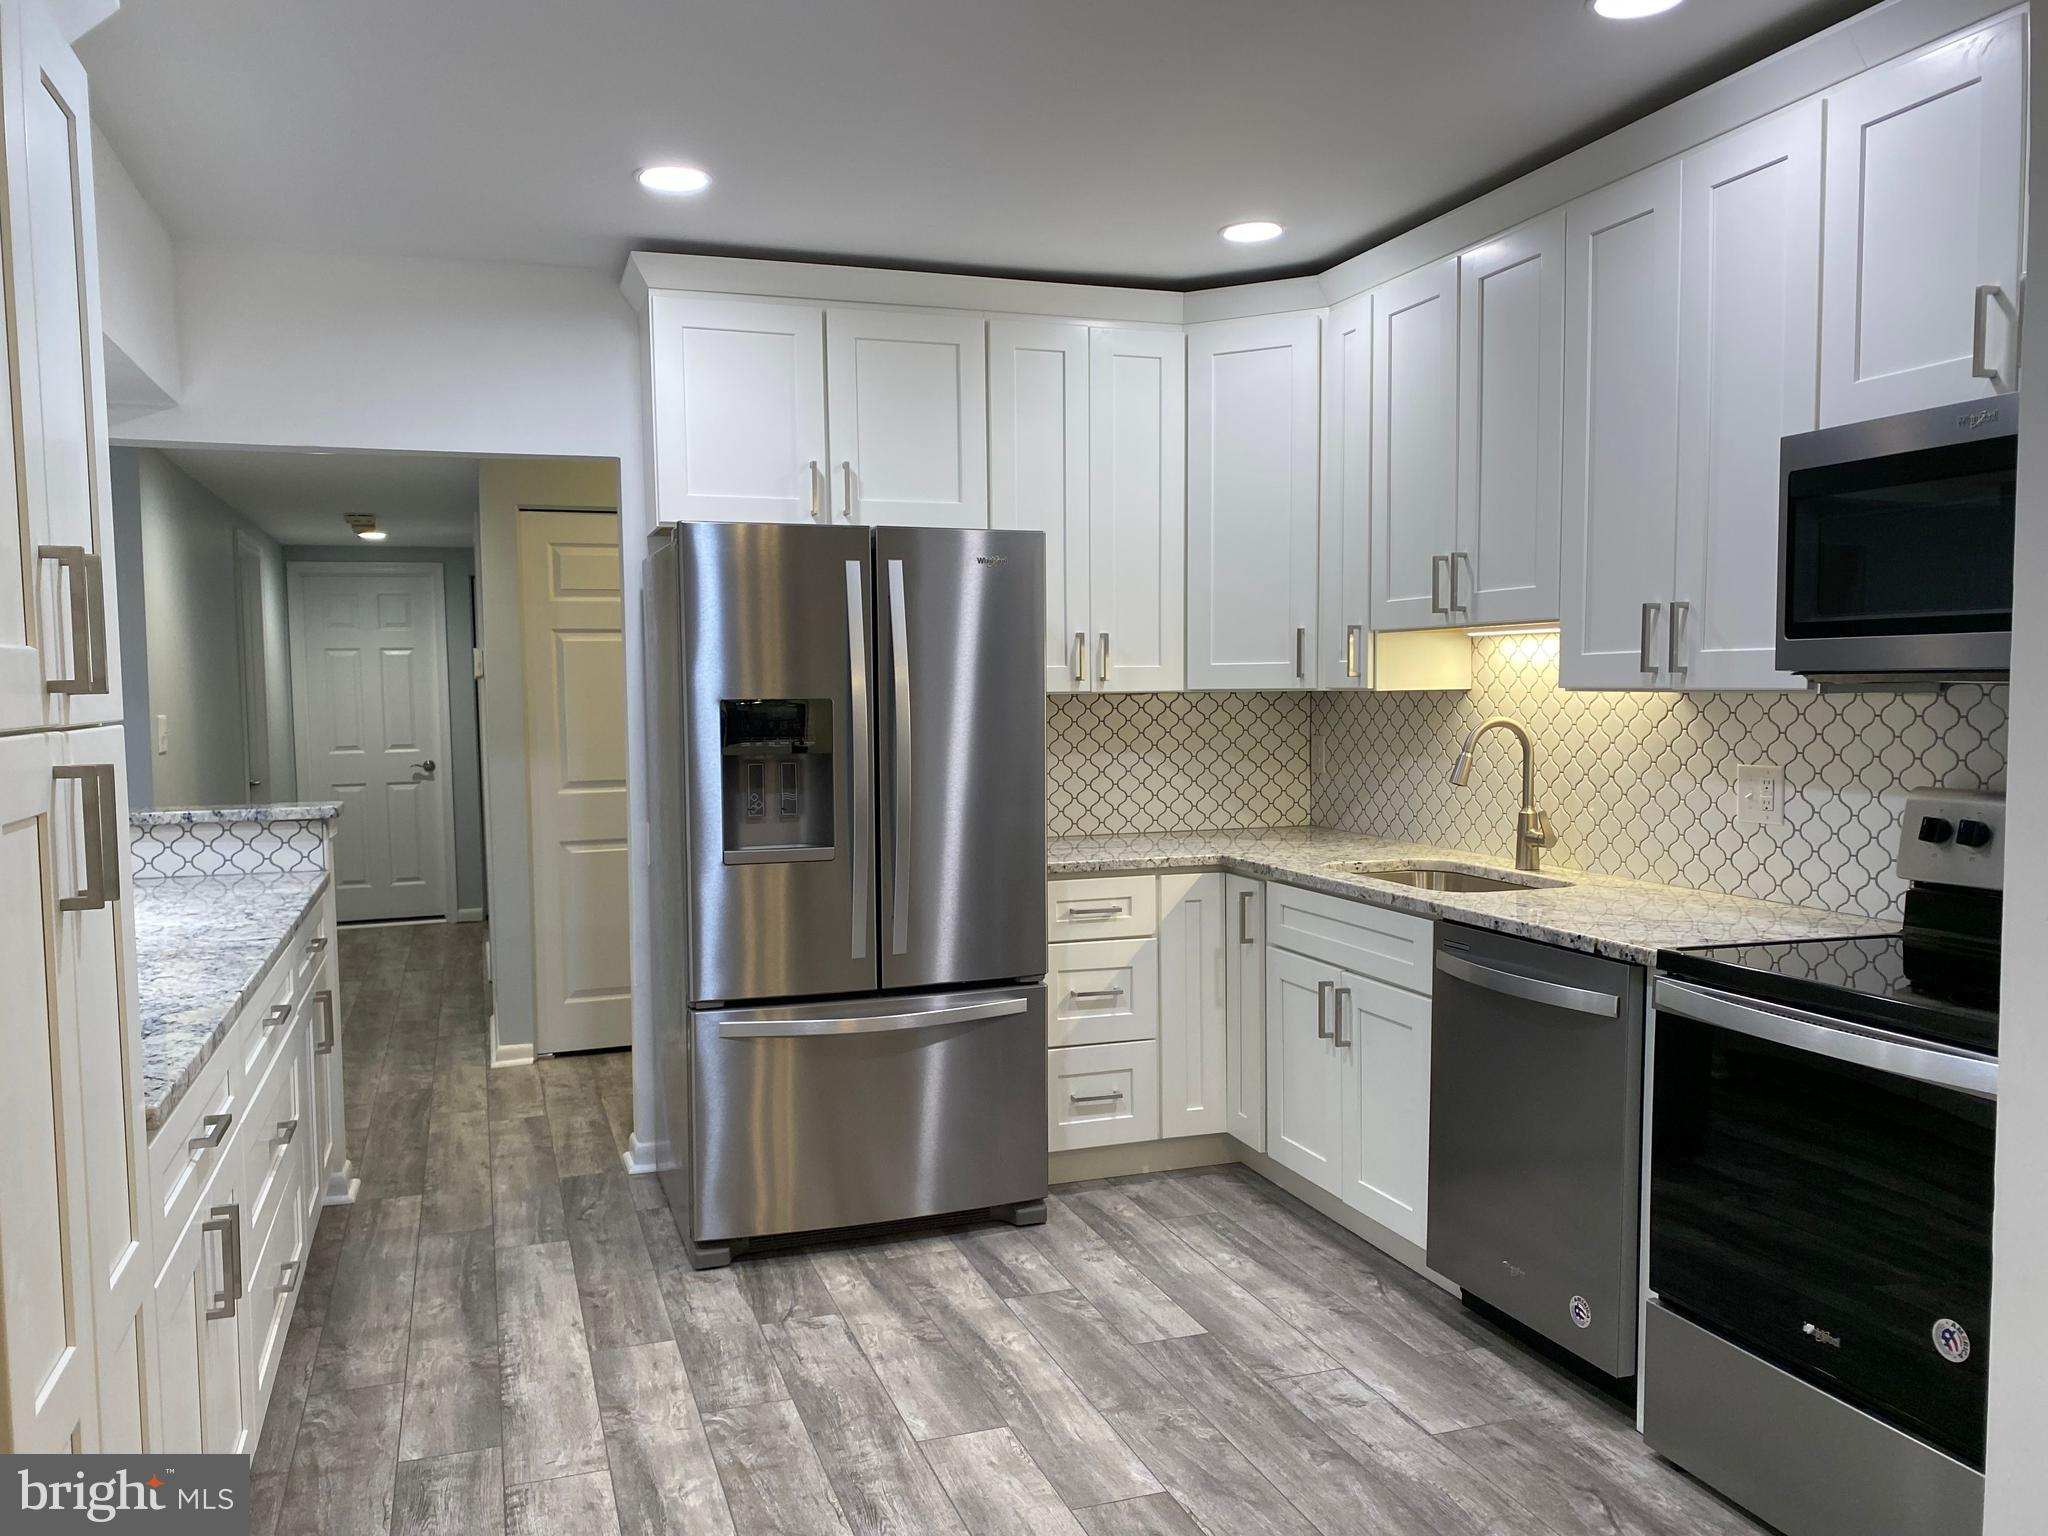 Highest and Best Offer due by 5pm on Tues. 9/28. Beautifully renovated Mays Chapel condo. This second floor 2BR/2BA unit offers many updates. Kitchen has gorgeous granite counter tops with seating along one side. New soft close cabinets with a pantry, all new Whirlpool stainless steel appliances, Moen fixtures. Luxury vinyl flooring throughout the kitchen, dining room, living room and hallway. Every room has been freshly painted. Living room has a slider that opens to a covered balcony for some outdoor space to relax. Additional storage closet off the balcony. New carpet in both bedrooms. The large primary bedroom has a walk-in closet. Beautifully updated primary bathroom with a marble double vanity and stunning tiled shower.  Spacious second bedroom with a closet. Second full bathroom has a granite vanity and has been newly tiled tub/shower.  Laundry room with shelving and additional storage space. All new Andersen windows . Convenient to major roadways shopping and dining. Don't miss out on this beauty.